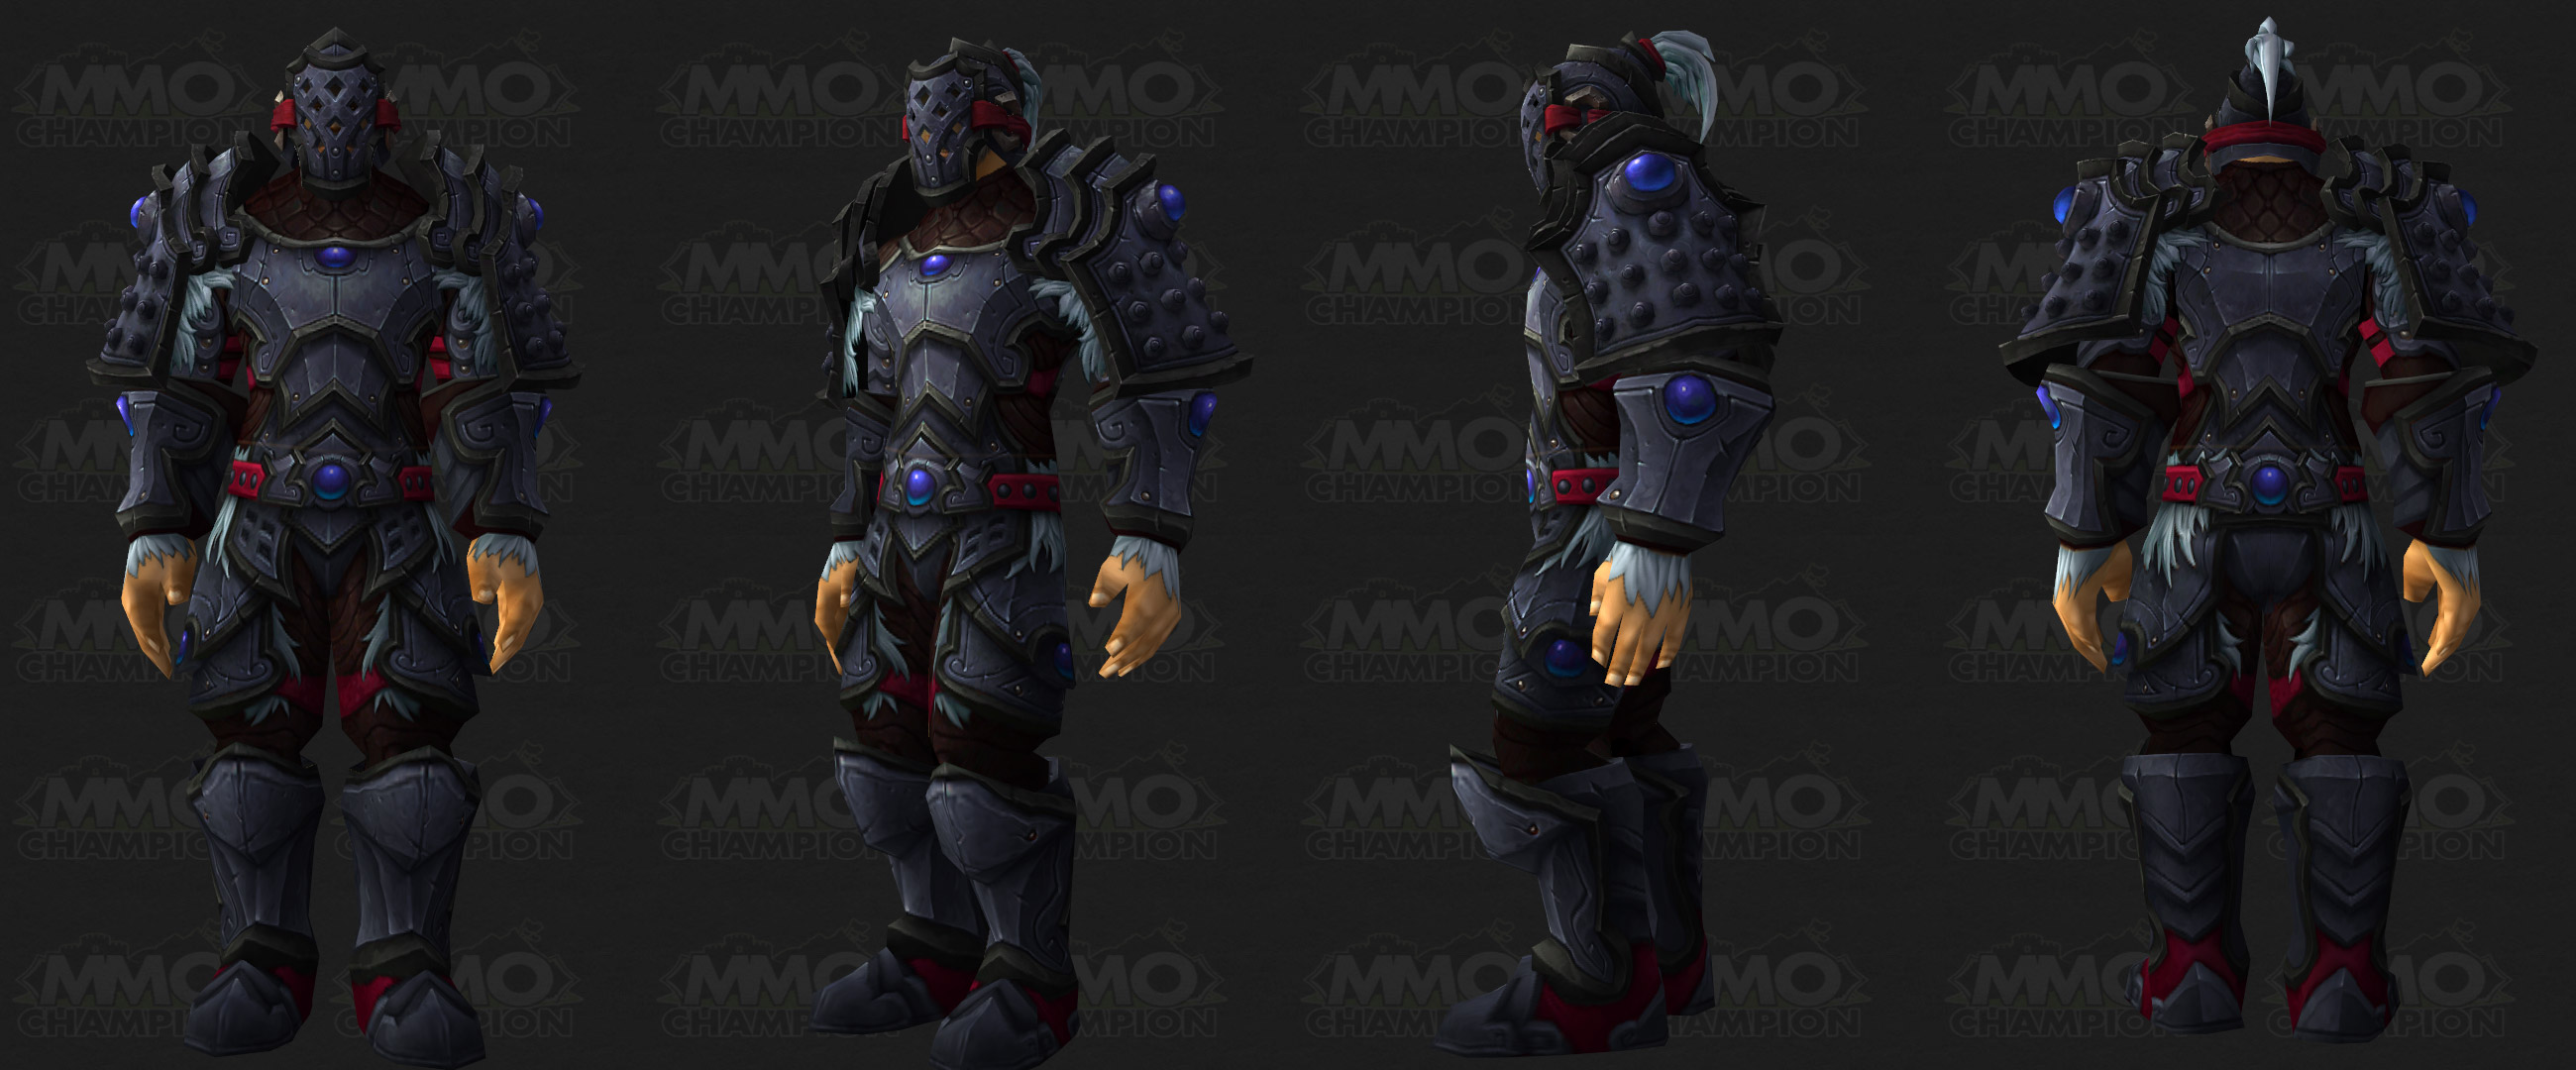 Mists of Pandaria Dungeon Set - Leather & MoP Dungeon Armor Sets Upcoming Beta Build End of D3 Beta Curse ...